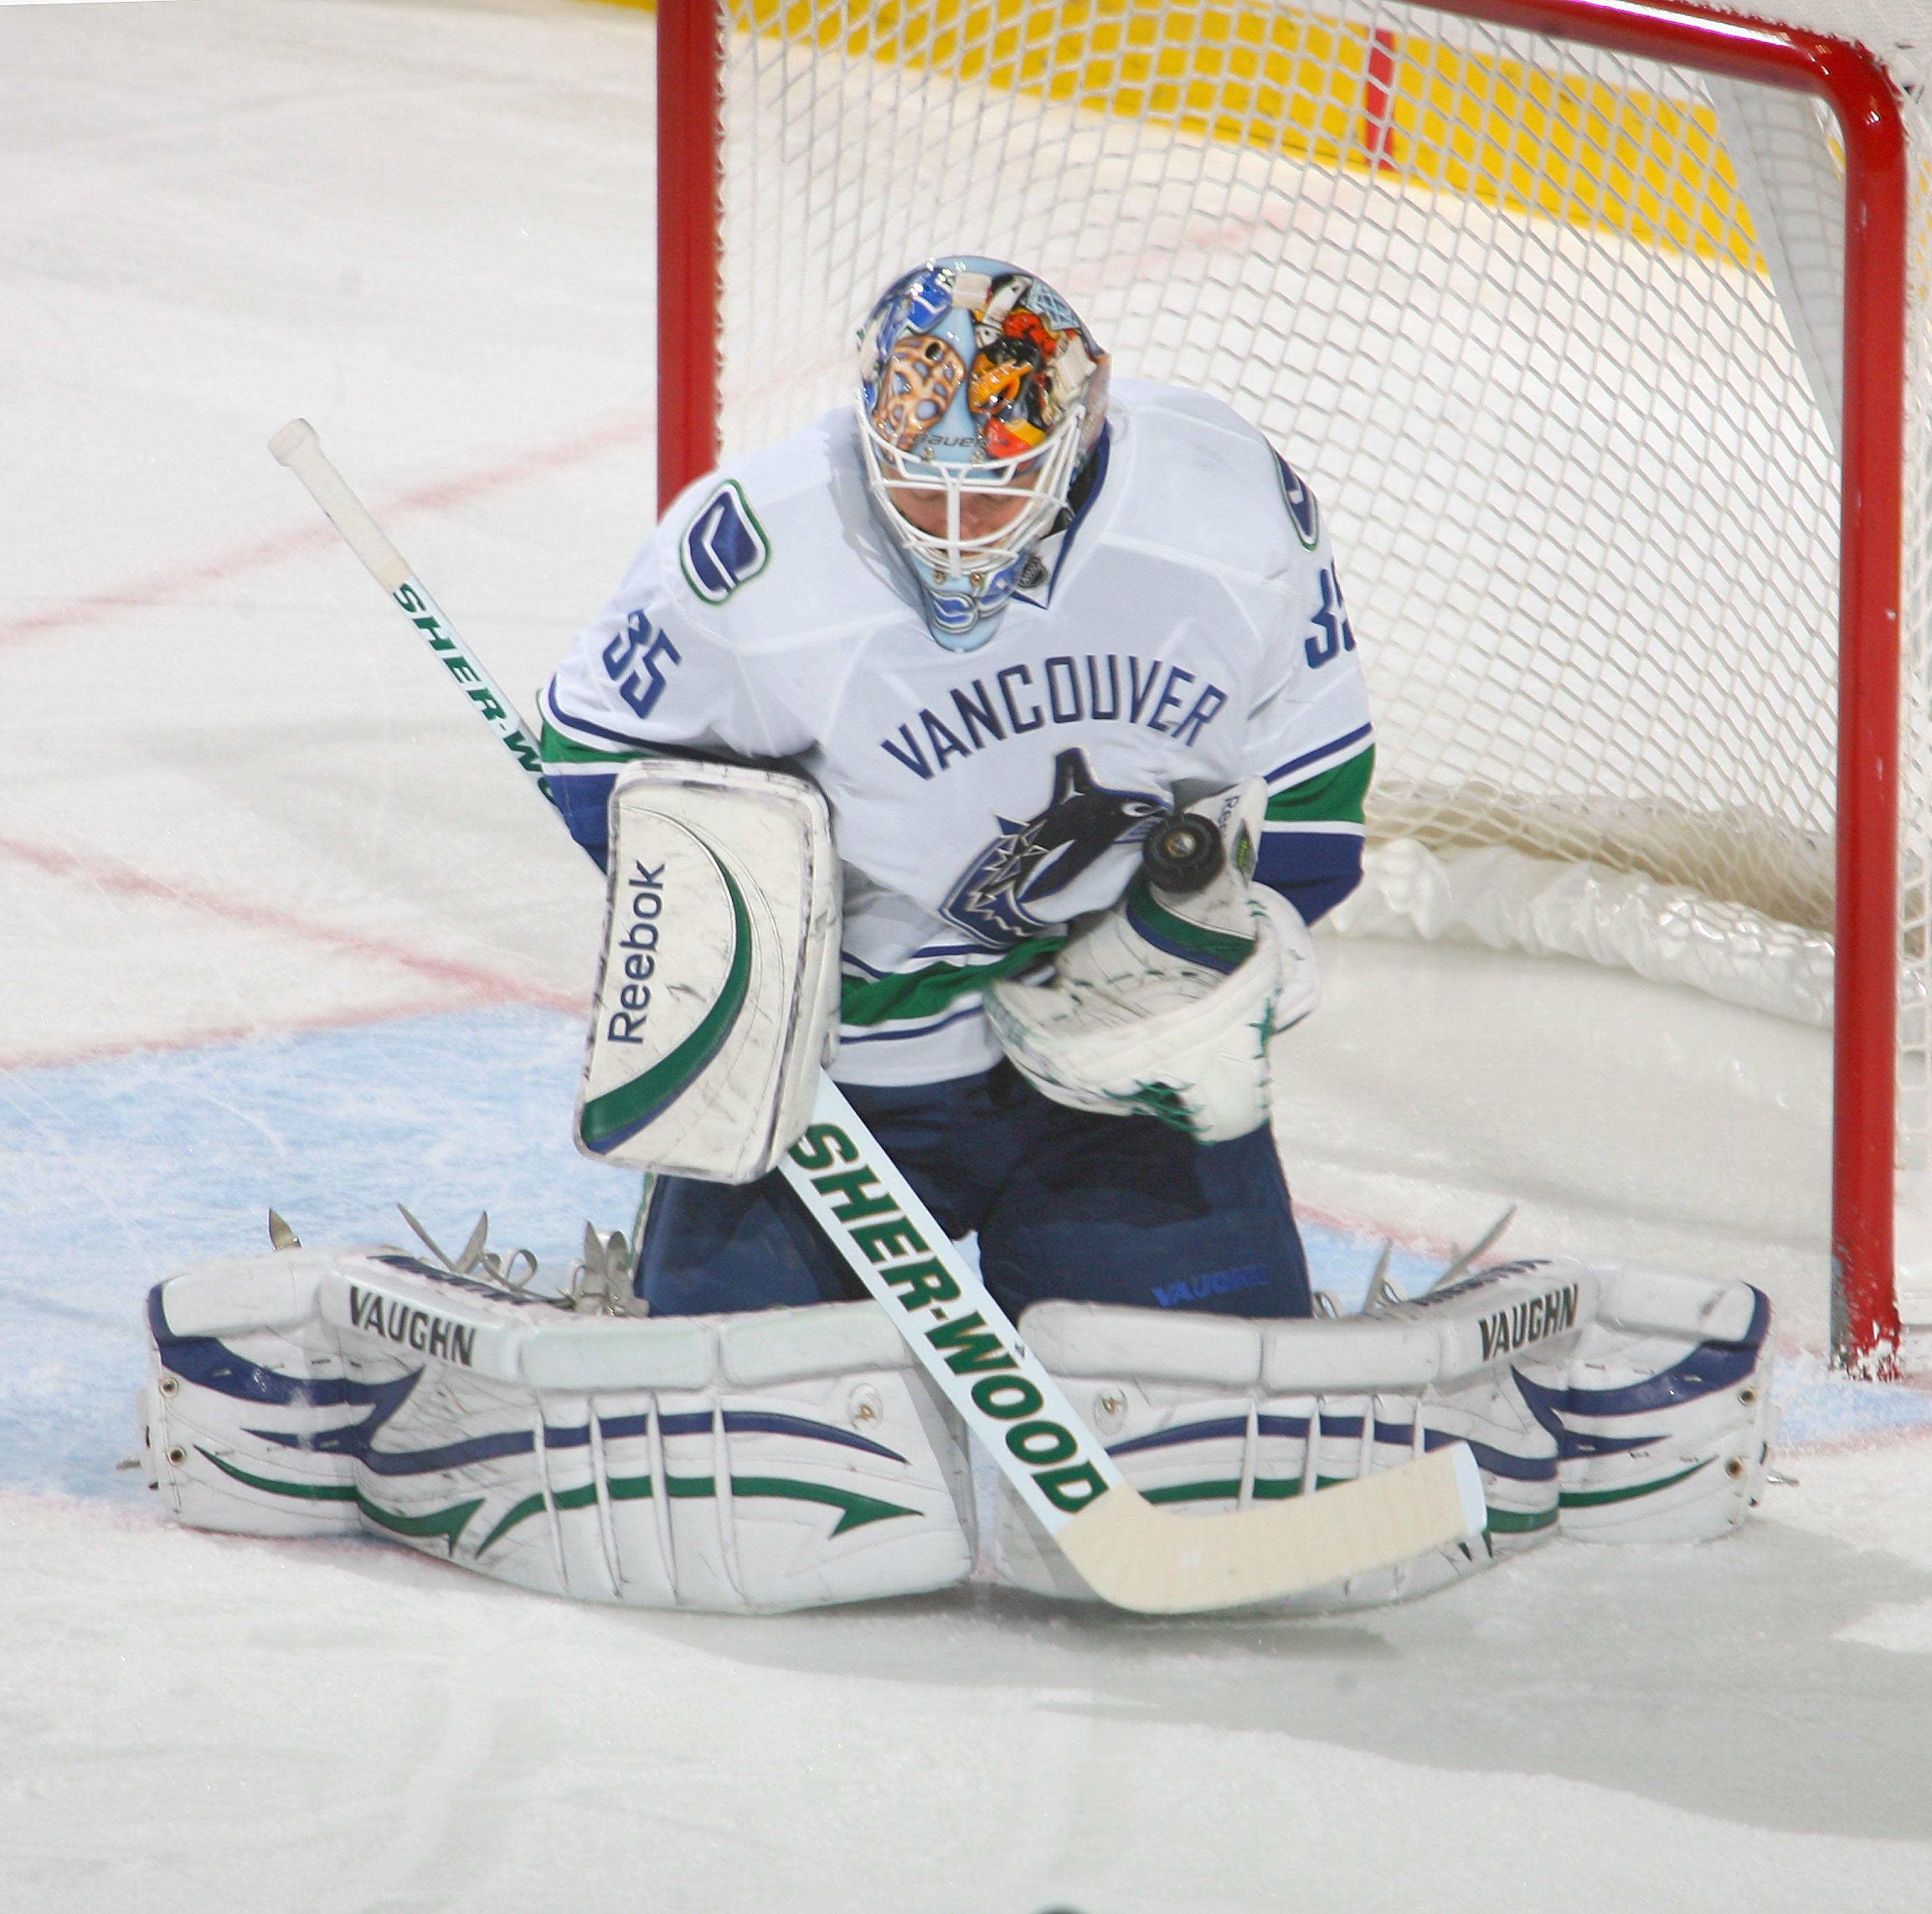 BUFFALO, NY - NOVEMBER 15:  Corey Schneider #35 of the Vancouver Canucks makes a save against the Buffalo Sabres  at HSBC Arena on November 15, 2010 in Buffalo, New York. Buffalo won 4-3 in overtime.  (Photo by Rick Stewart/Getty Images)